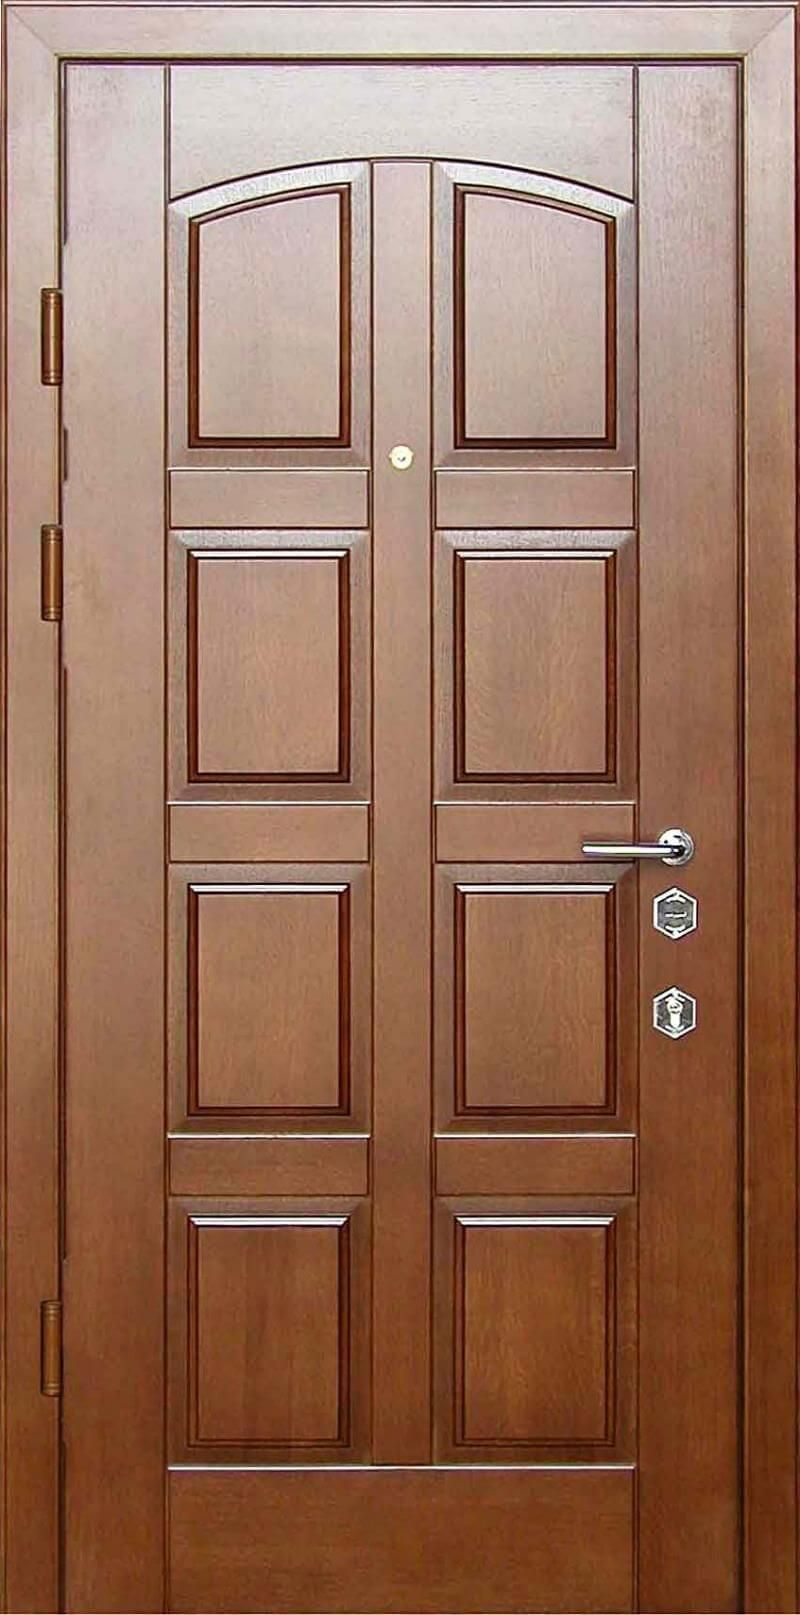 Top 50 Modern Wooden Door Design Ideas You Want To Choose Them For